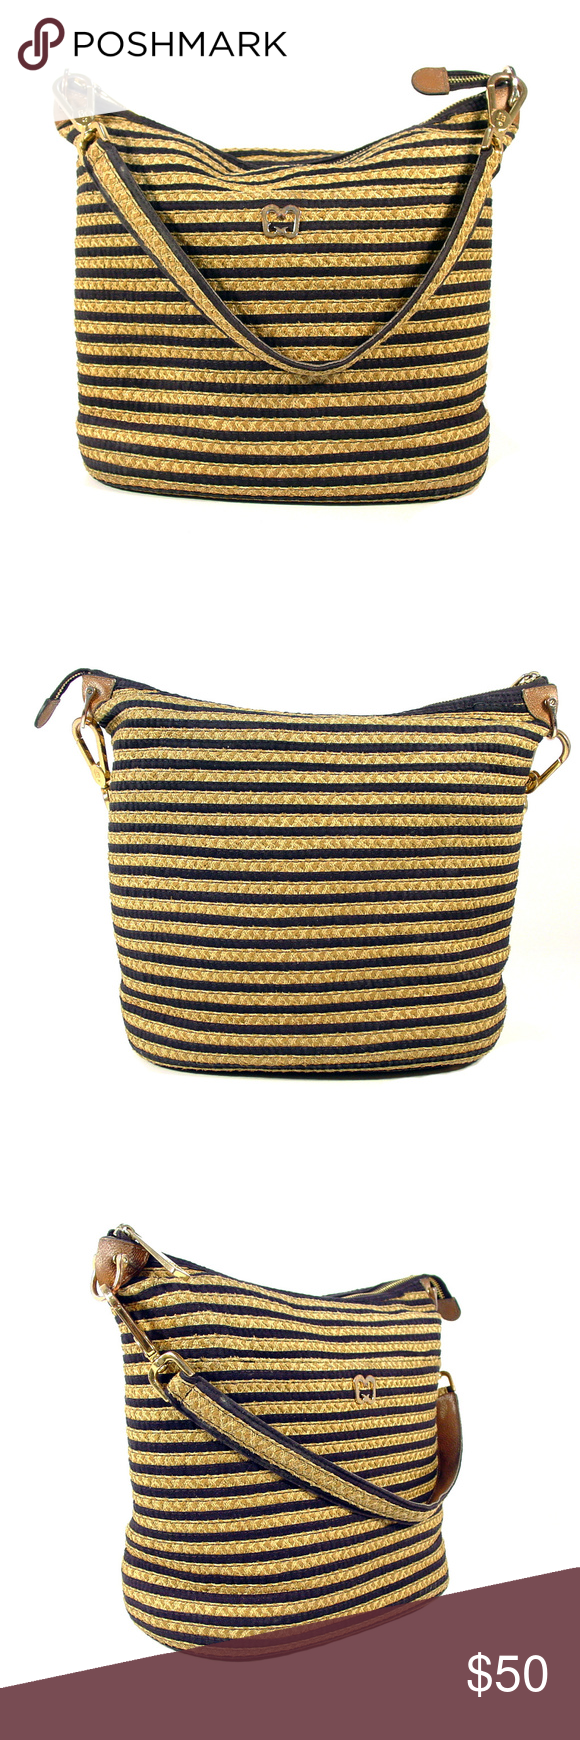 ERIC JAVITS Black and Tan Striped Summer Hobo Classic ...